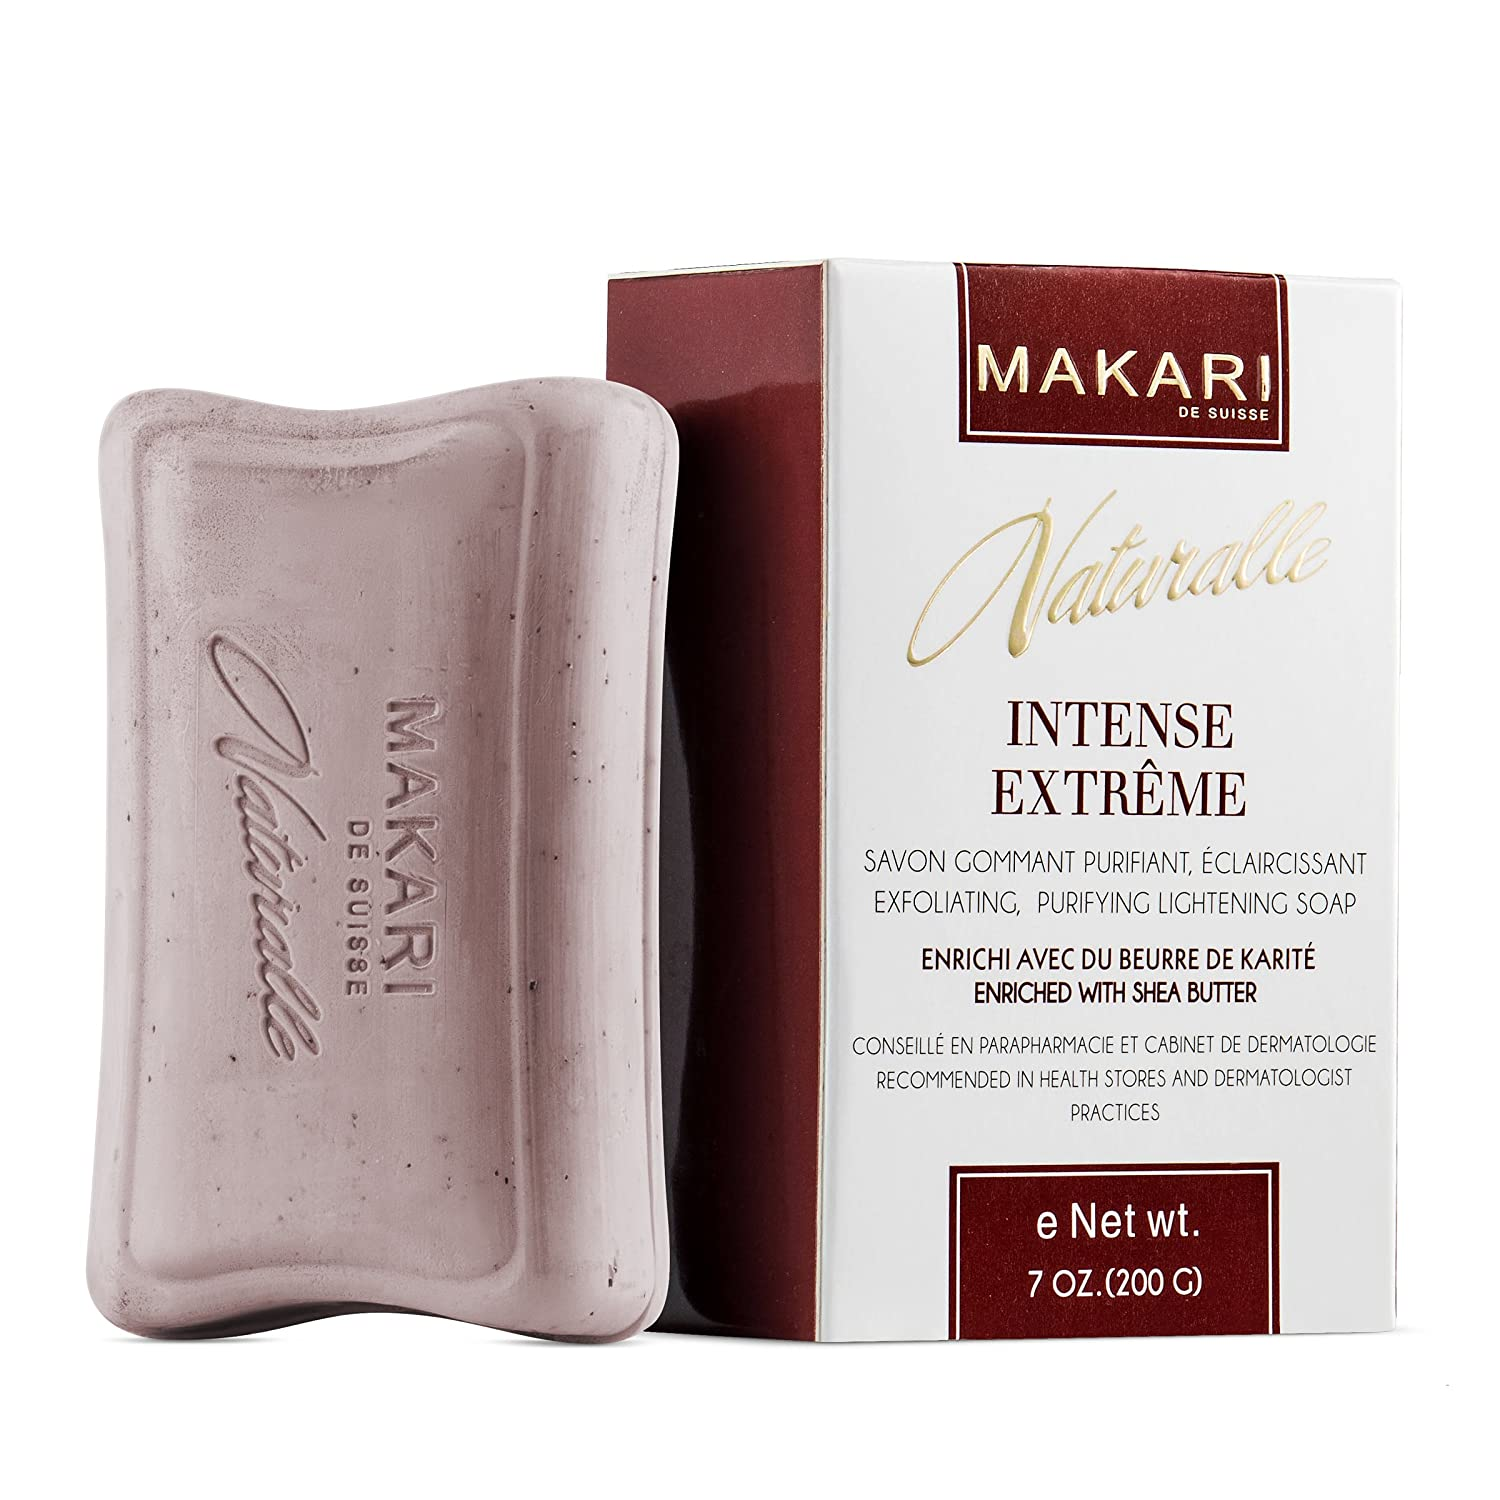 Makari Naturalle Intense Extreme Skin Lightening Soap 7oz. – Exfoliating, Purifying & Whitening Bar Soap With Shea Butter & SPF 15– Anti-Aging Cleansing Treatment for Dark Spots, Acne Scars & Wrinkles